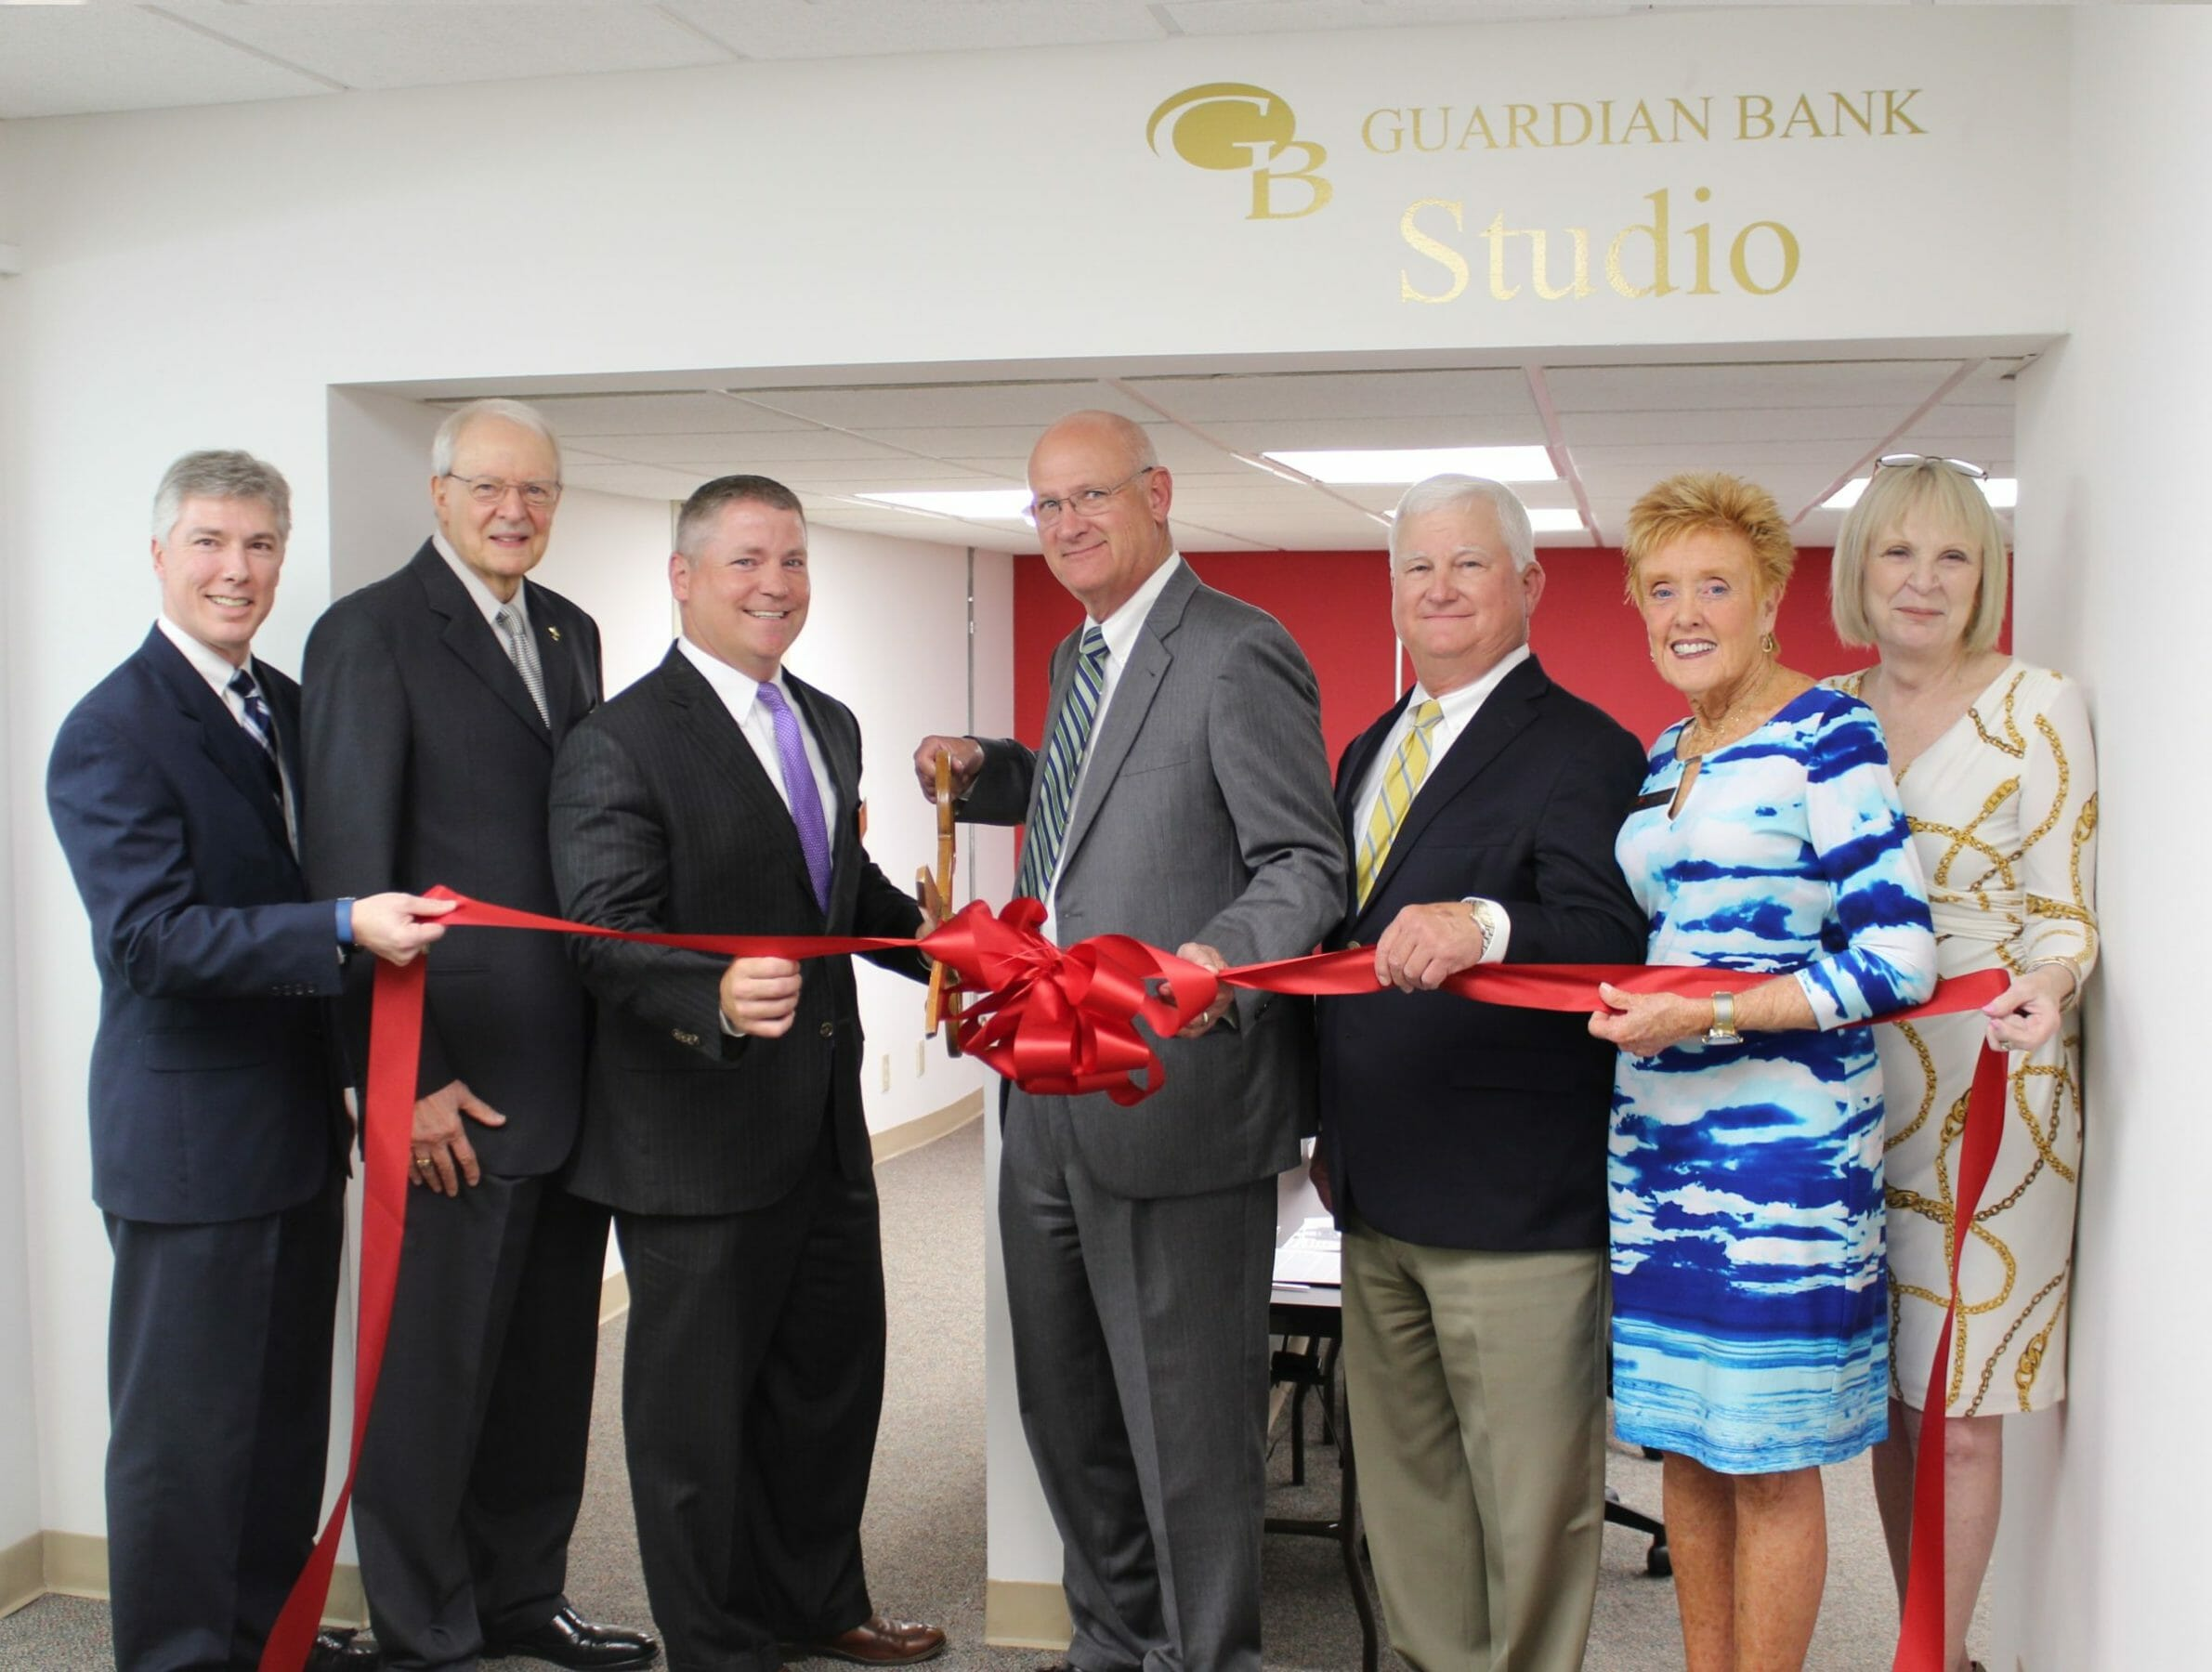 Turner Center Cuts Ribbon on Guardian Bank Studio